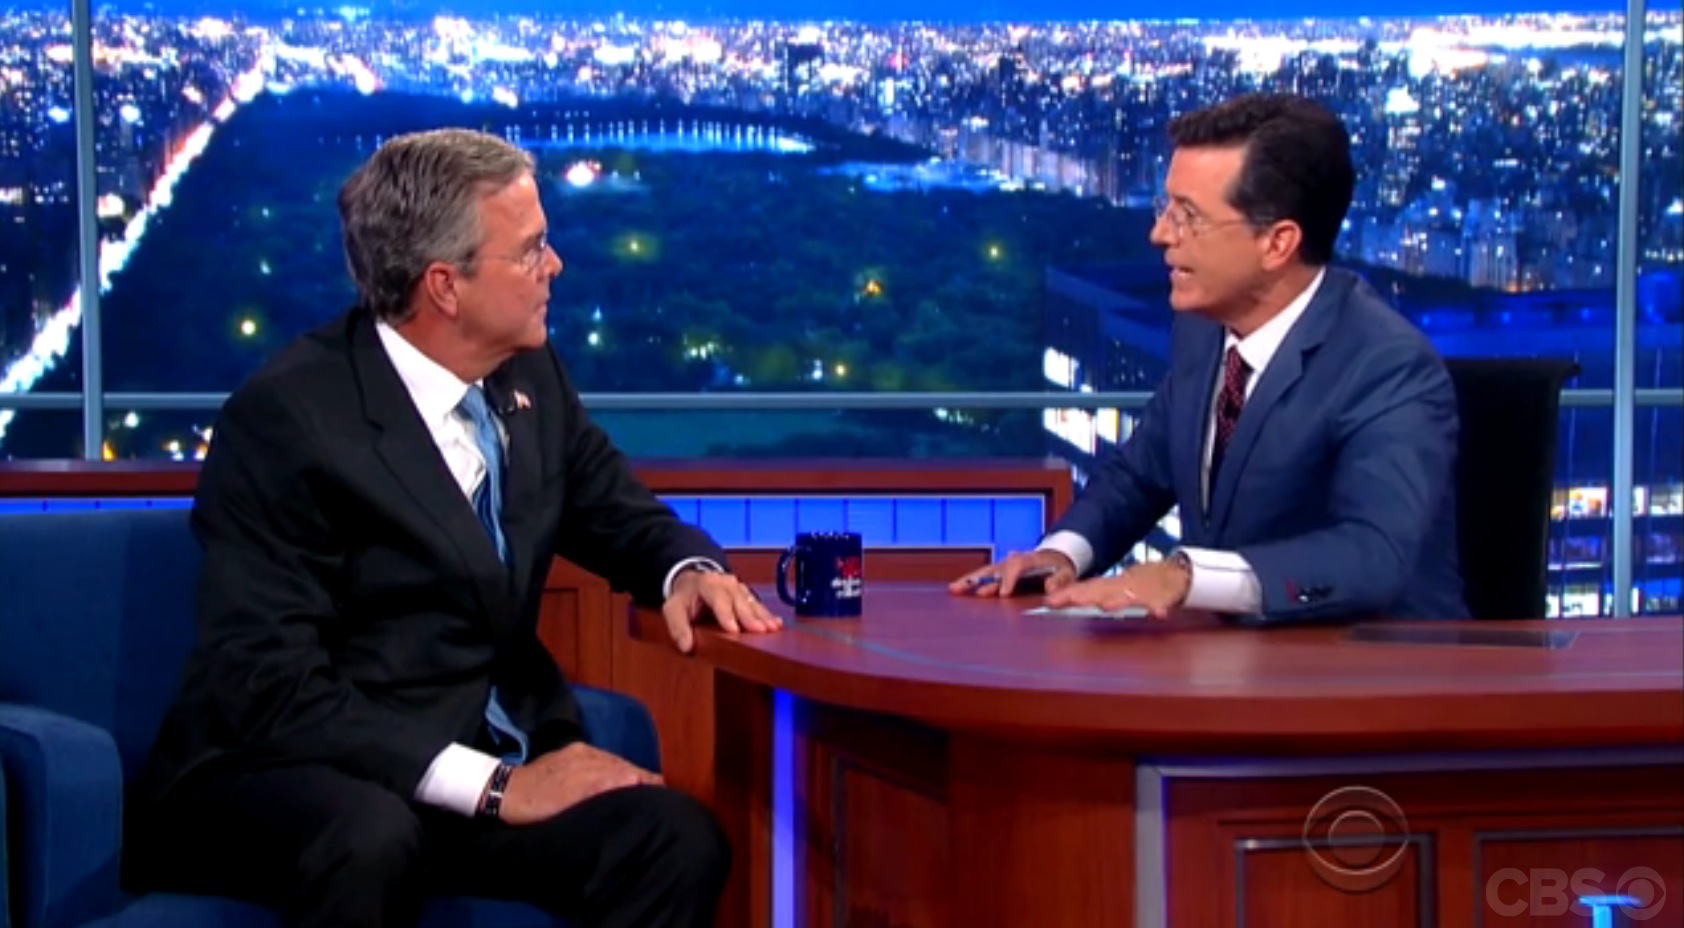 Jeb Bush on The Late Show